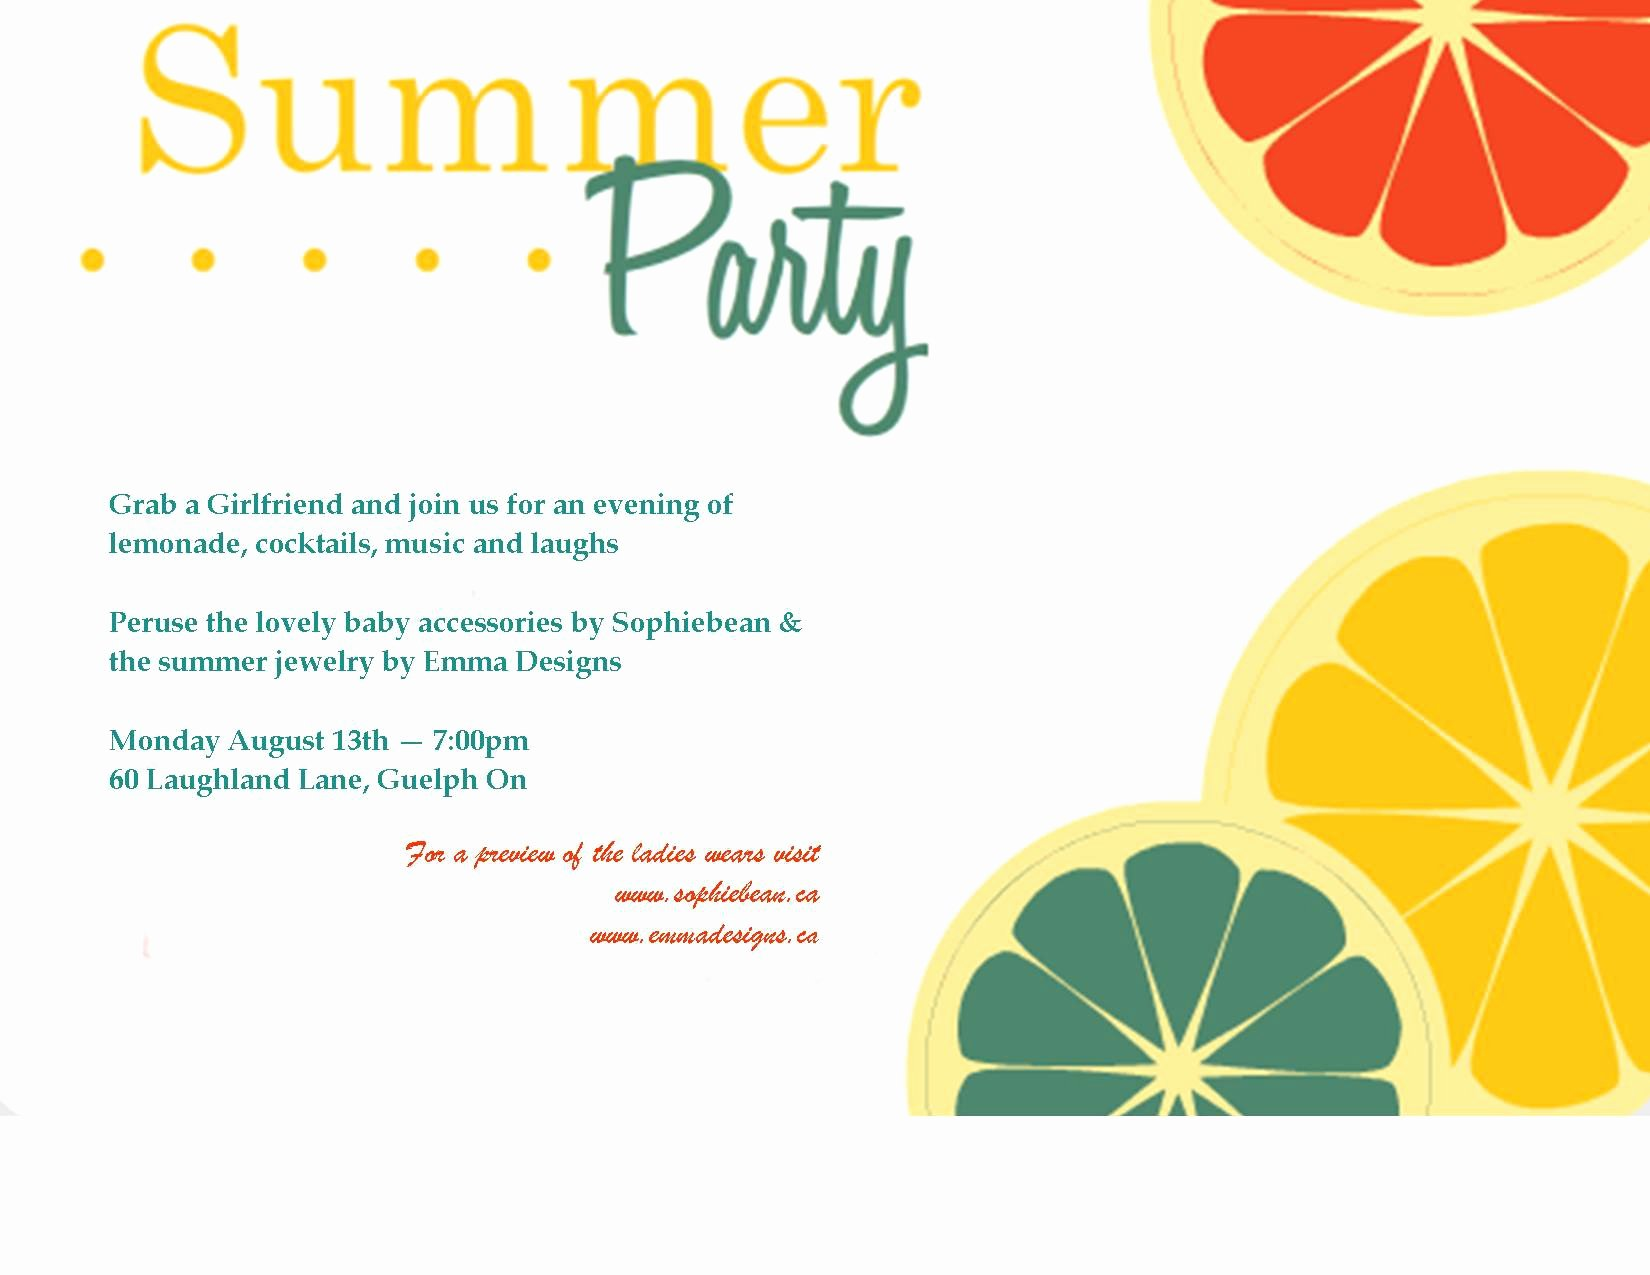 Garden Party Invite Template Inspirational Summer Party Invitation Template Summer Party Invitation